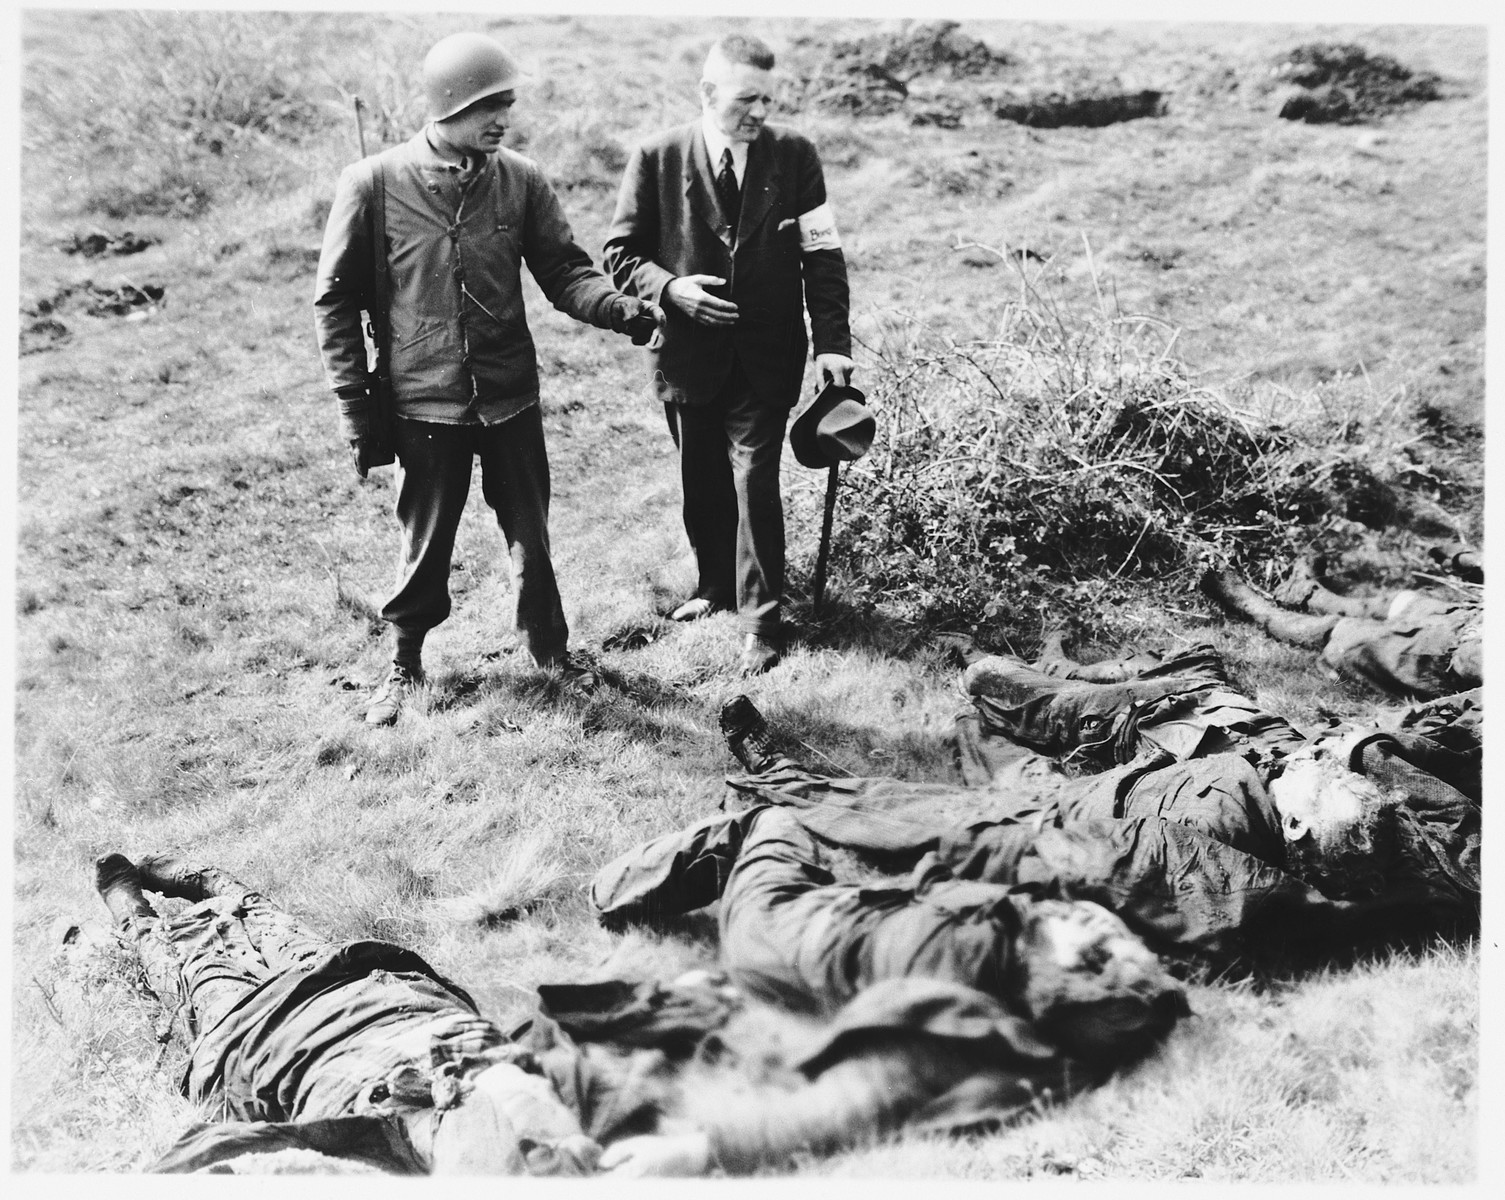 An American soldier and local civilian official examine corpses found near Warstein.  The victims were shot by German police prior to the arrival of U.S. troops.